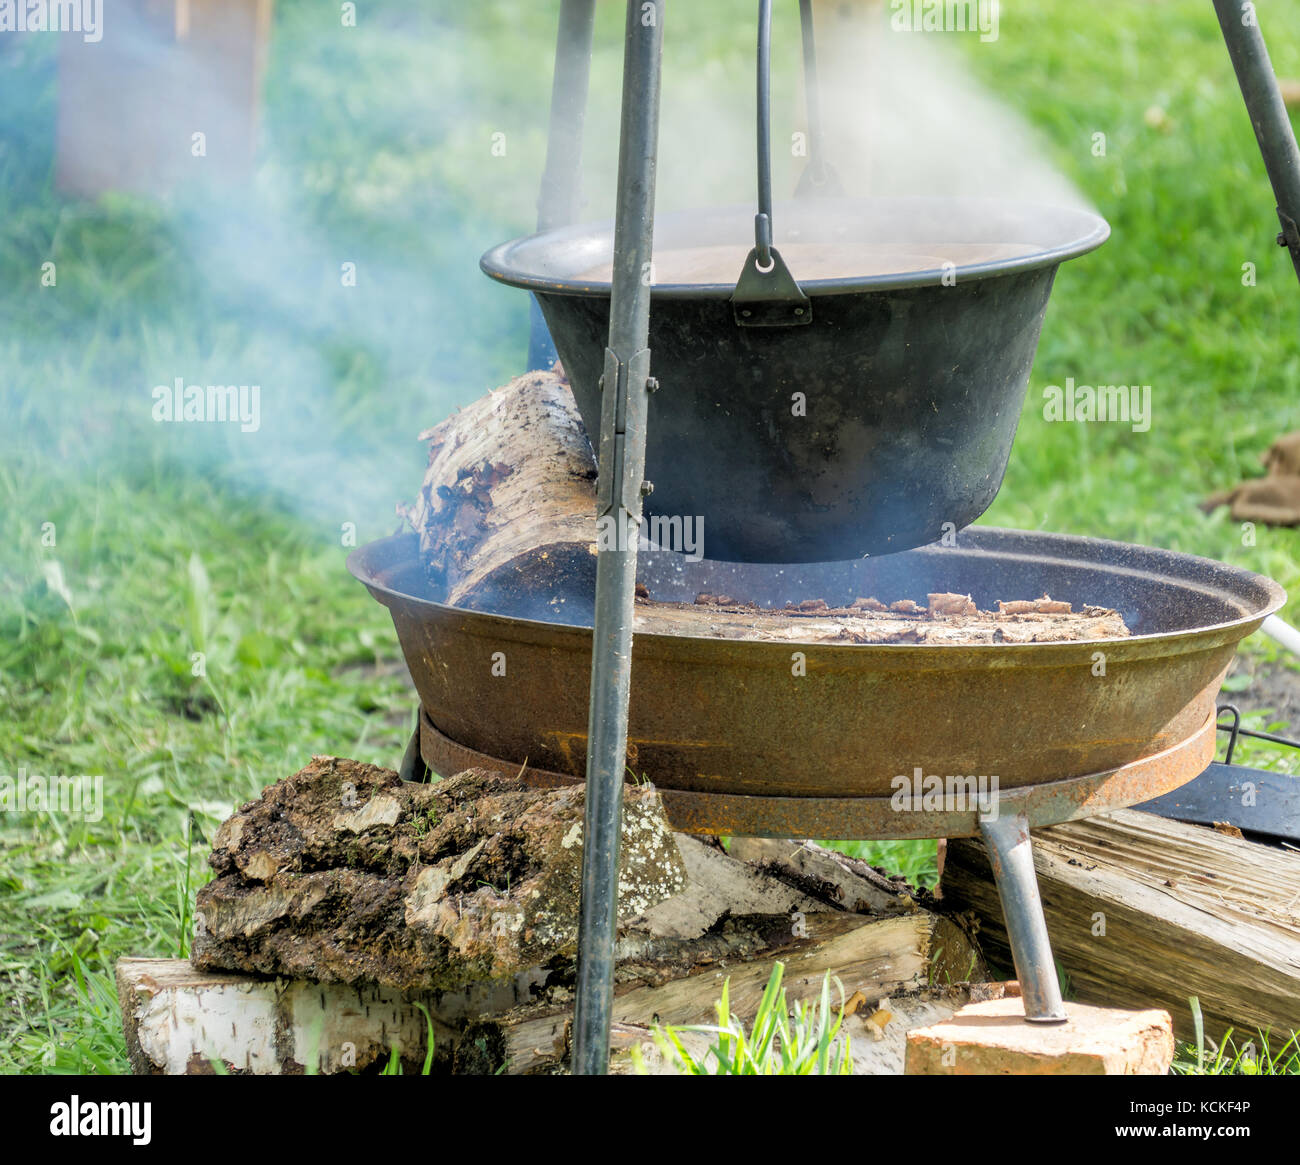 Pot with lunch over open fire place at a medieval festival - Stock Image